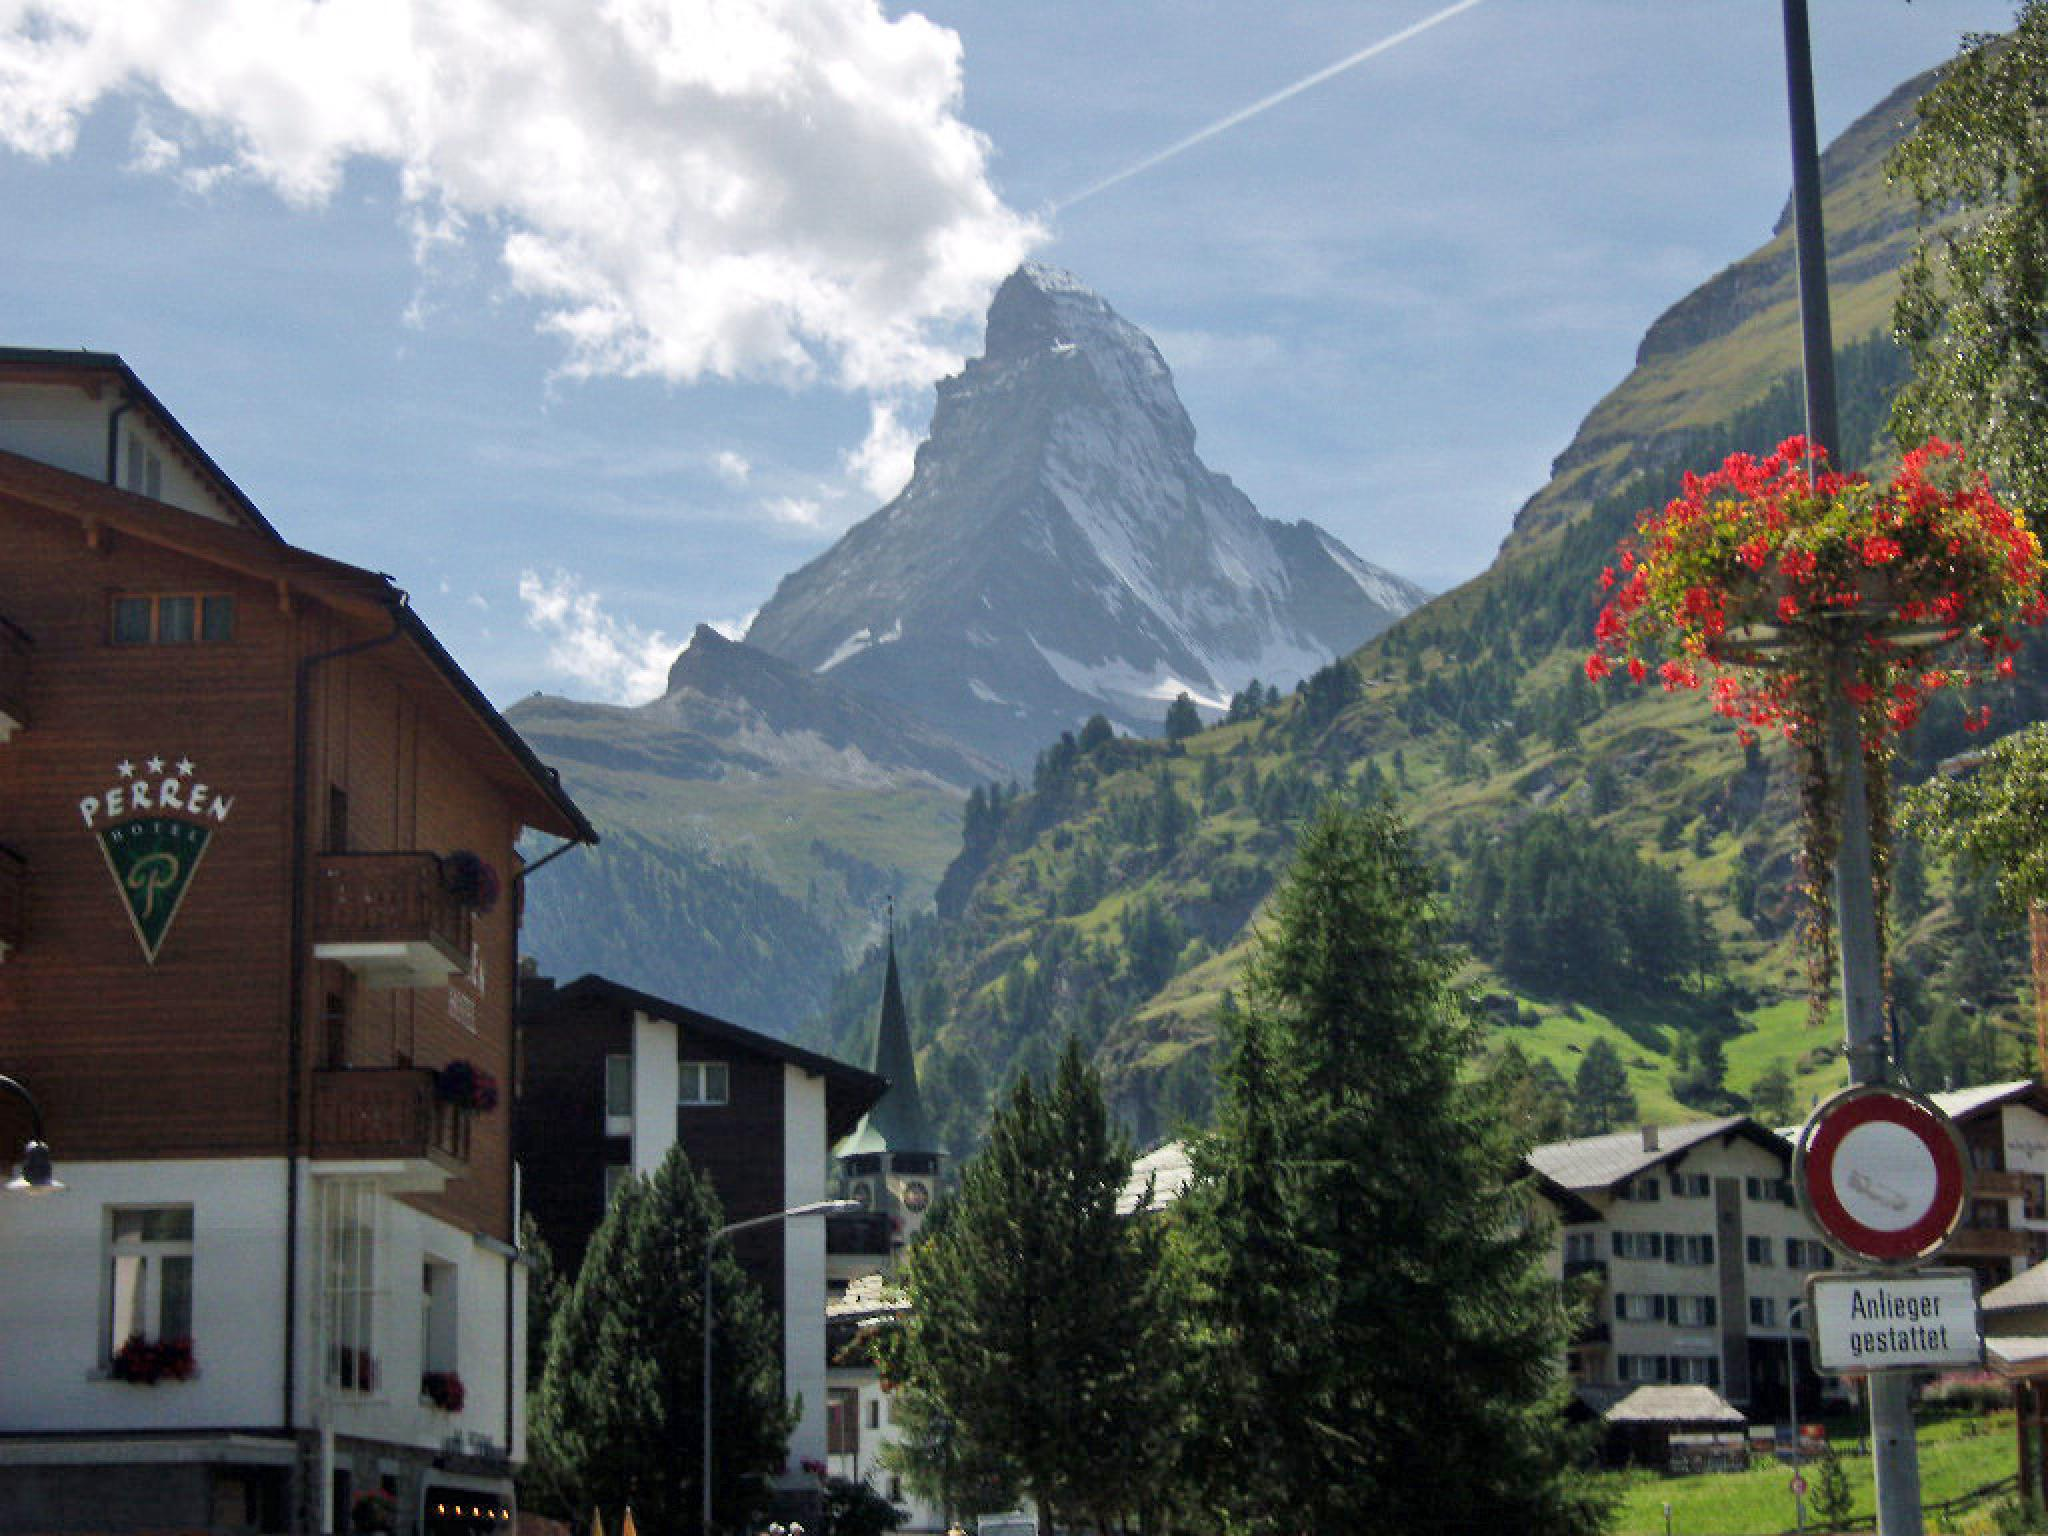 Matterhorn, Zermatt, Switzerland by monica.engeler